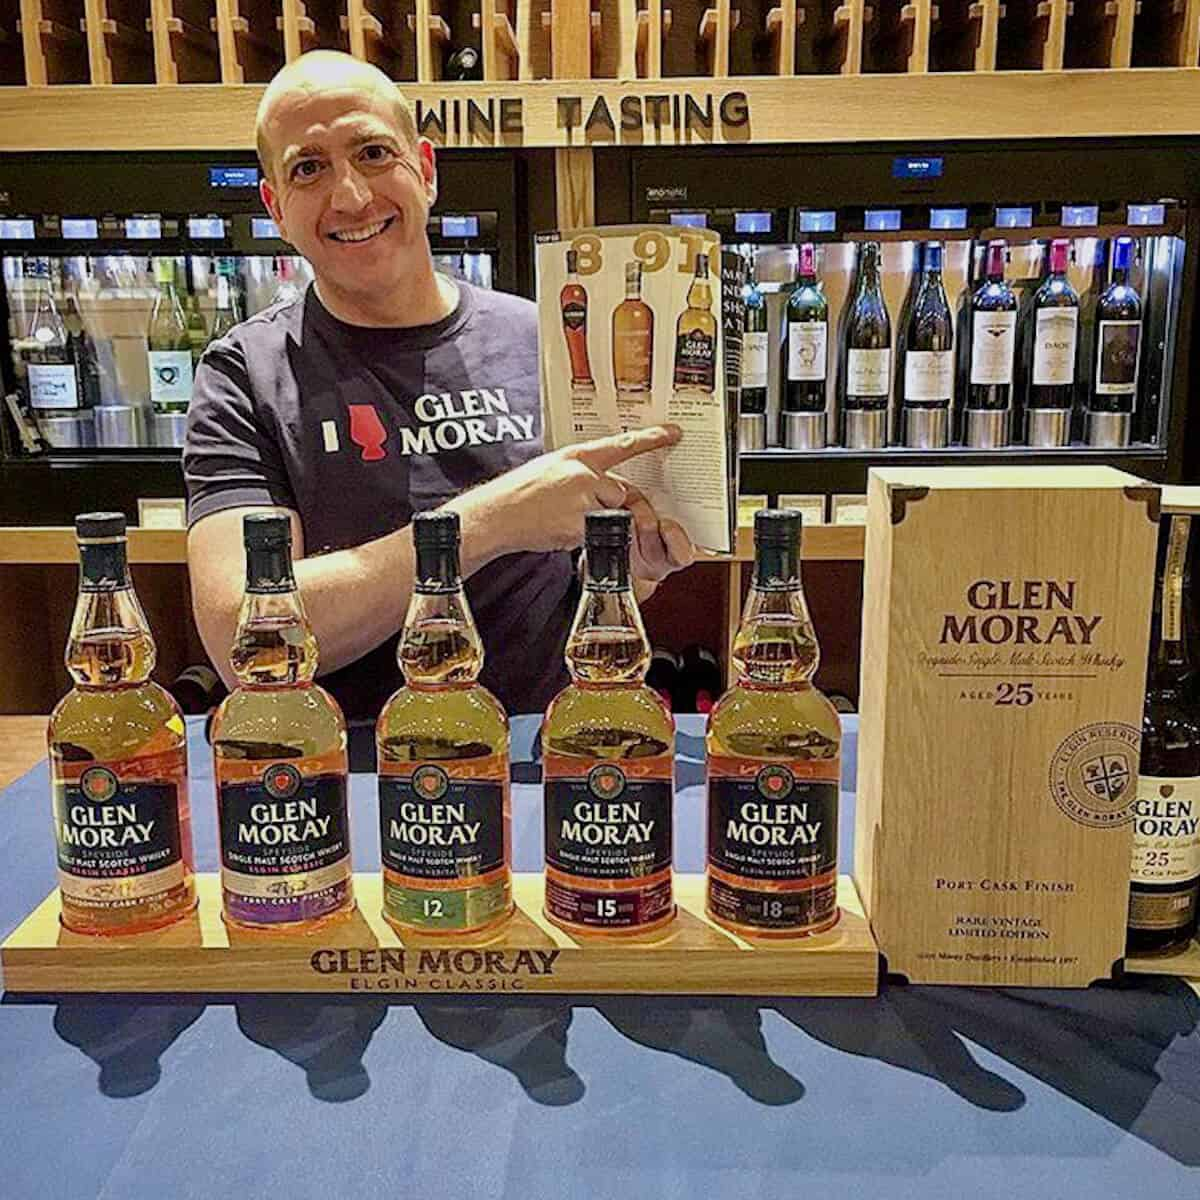 Glen Moray whisky bottle display with sales rep pointing to prochure behind.